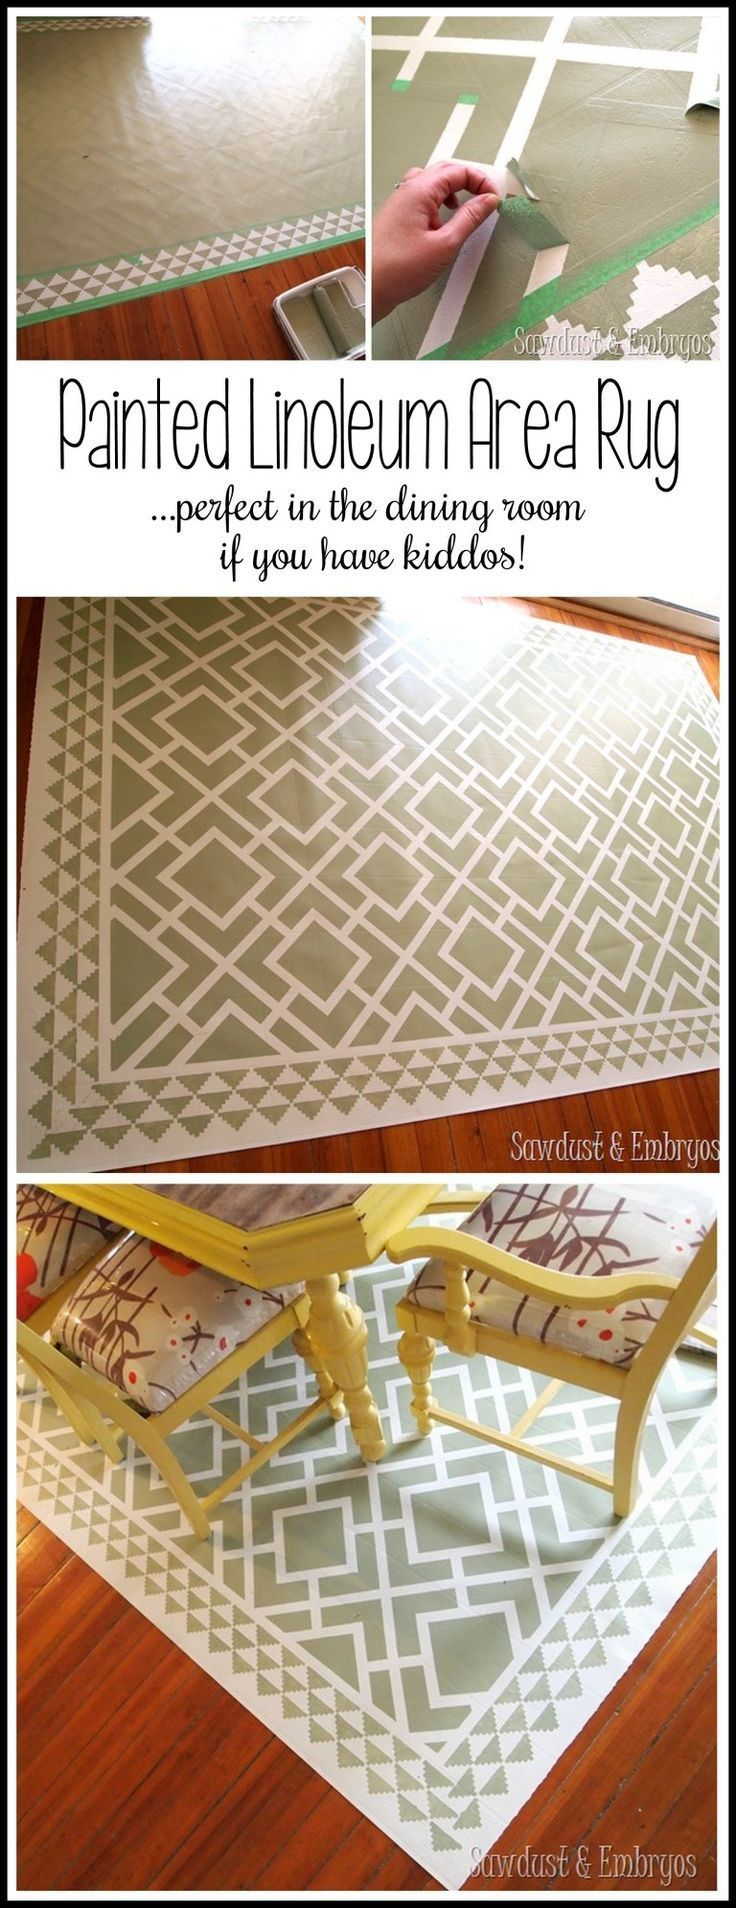 Paint a pattern onto a linoleum remnant to make a custom (and cheap!) area rug for the dining room! This os a MUST if you have little messy eaters!! {Reality Daydream}